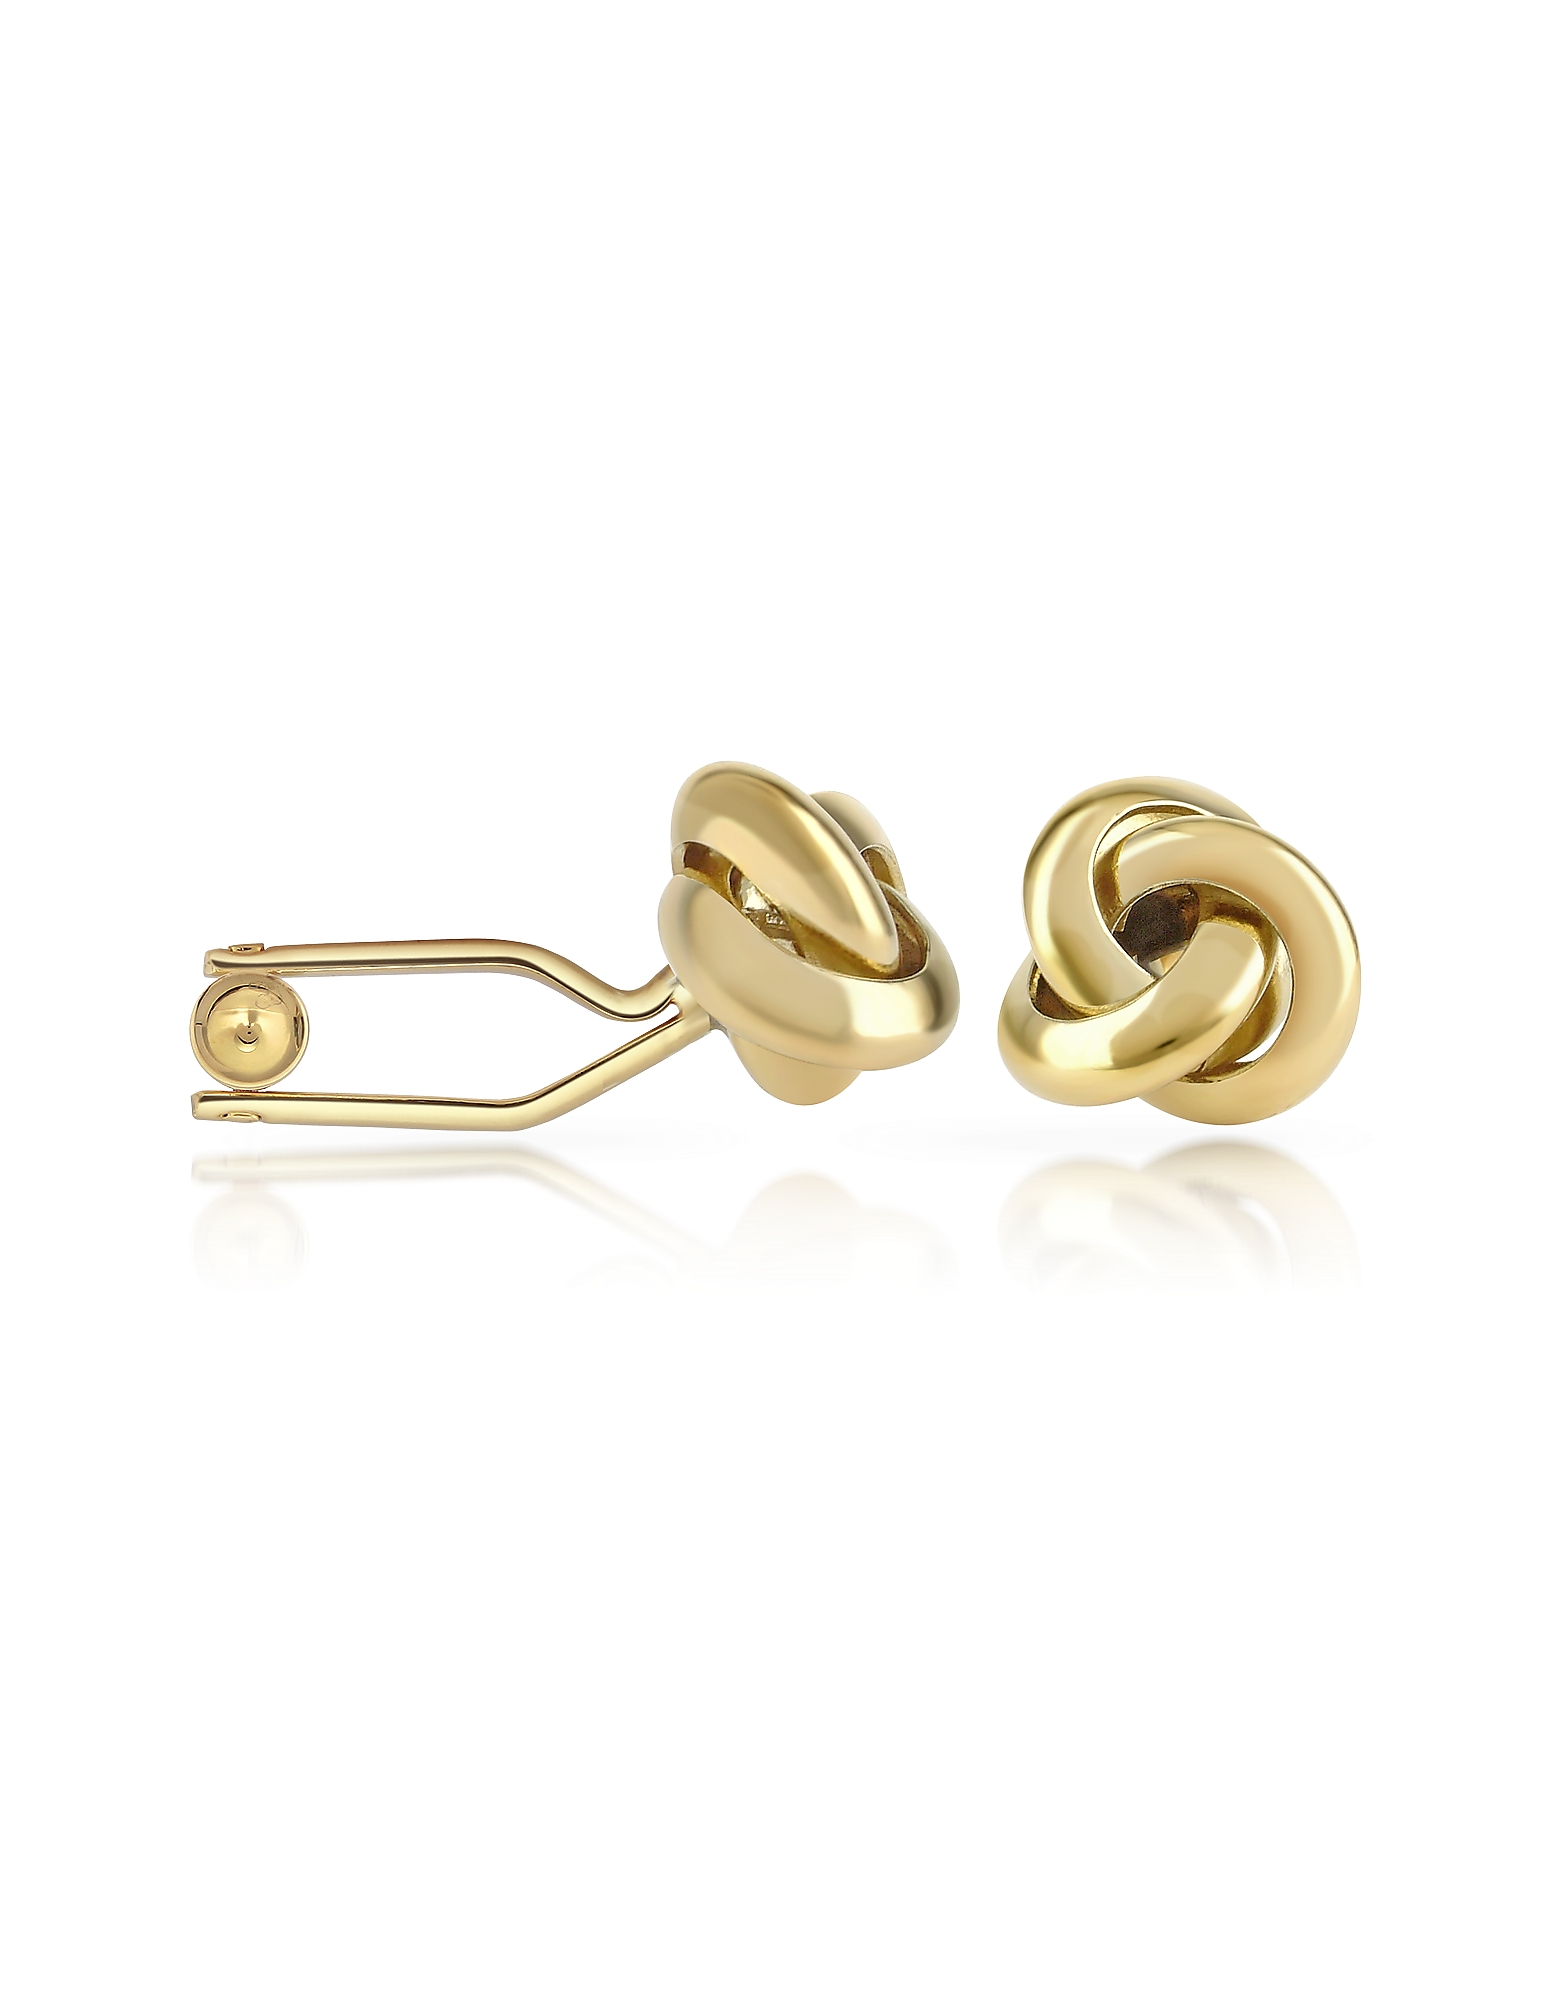 Forzieri Cufflinks, Knot Gold Plated Cuff Links